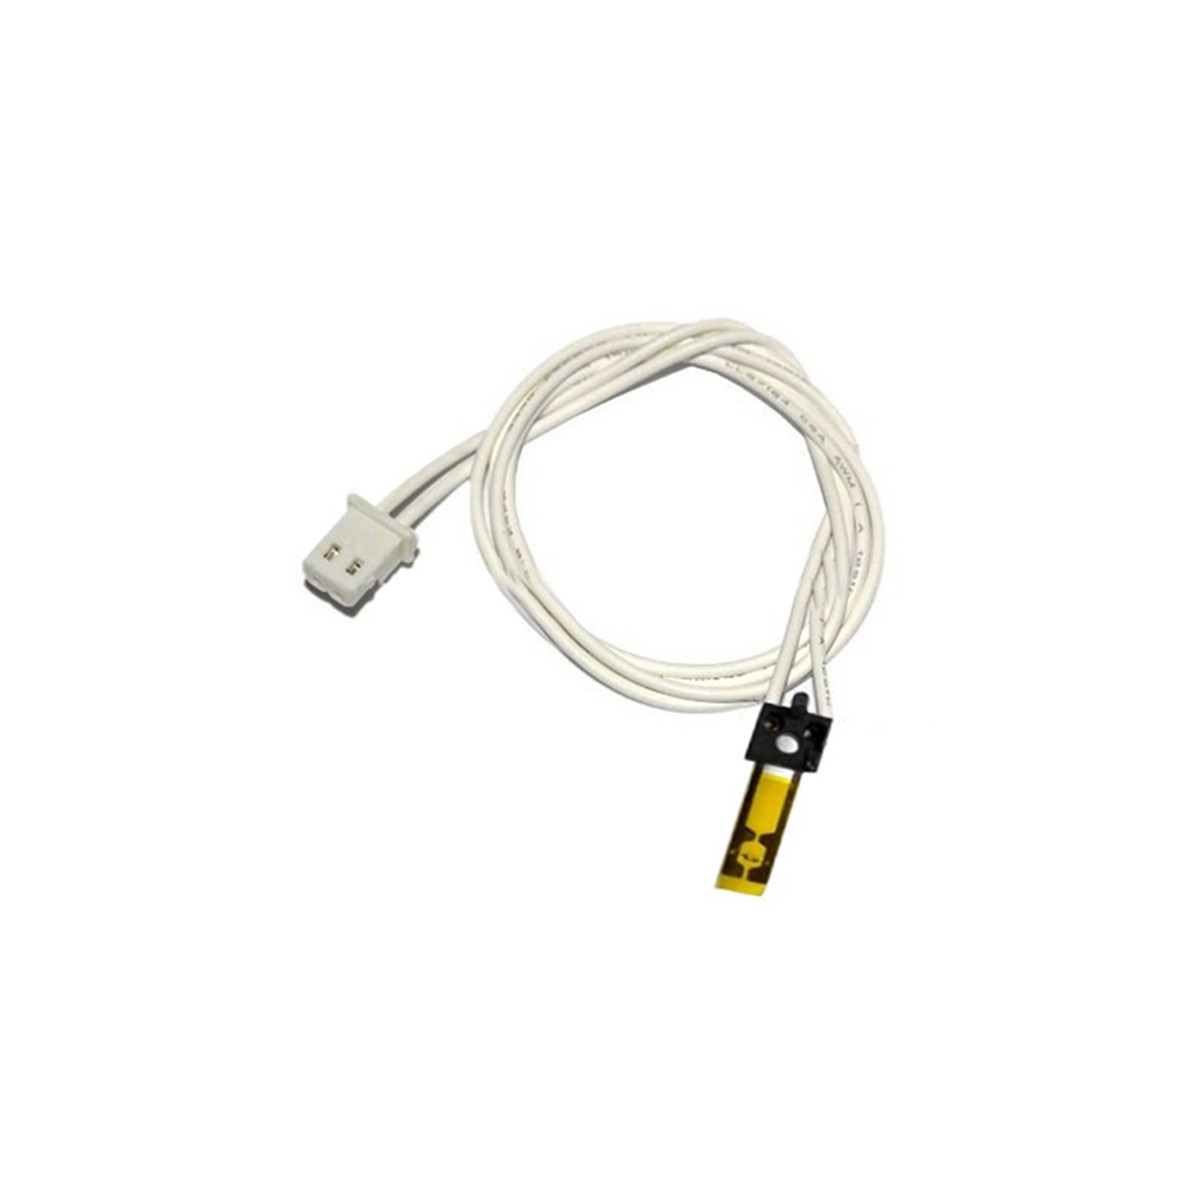 Thermistor do Fusor Brother DCP8060 DCP8065 HL5240 HL5280 HL5250 DCP8085 | LJ1345001 | Compatível